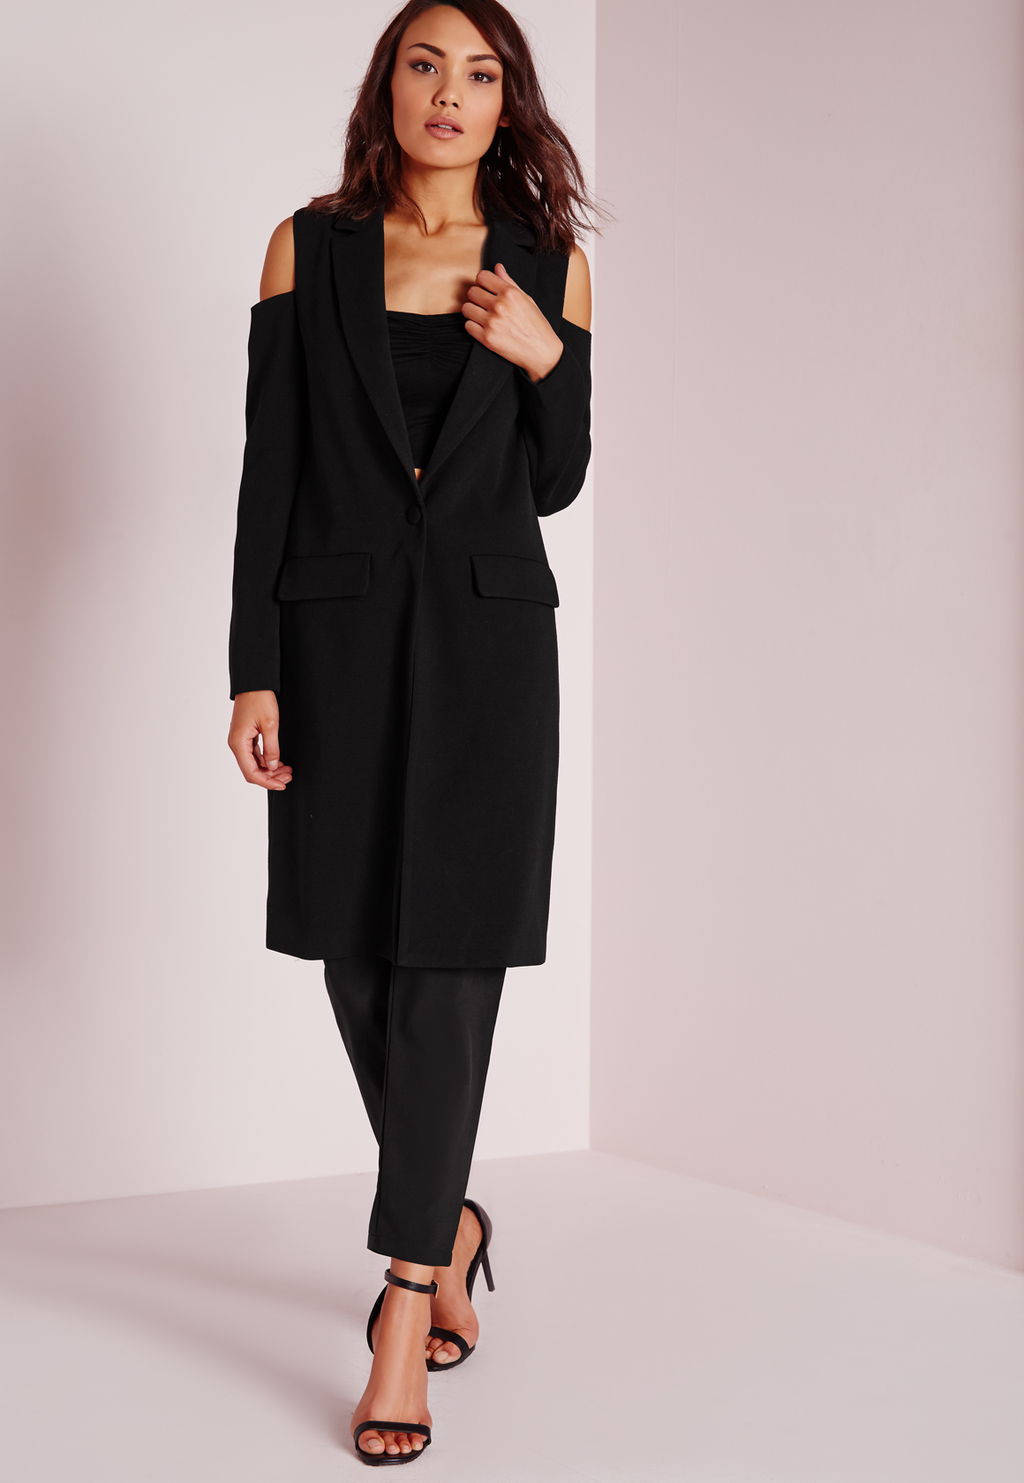 Cold Shoulder Longline Blazer Black, Black - pattern: plain; sleeve style: sleeveless; style: gilet; collar: standard lapel/rever collar; length: on the knee; predominant colour: black; occasions: evening, creative work; fit: tailored/fitted; fibres: polyester/polyamide - 100%; hip detail: subtle/flattering hip detail; sleeve length: sleeveless; texture group: crepes; collar break: low/open; pattern type: fabric; season: s/s 2016; wardrobe: highlight